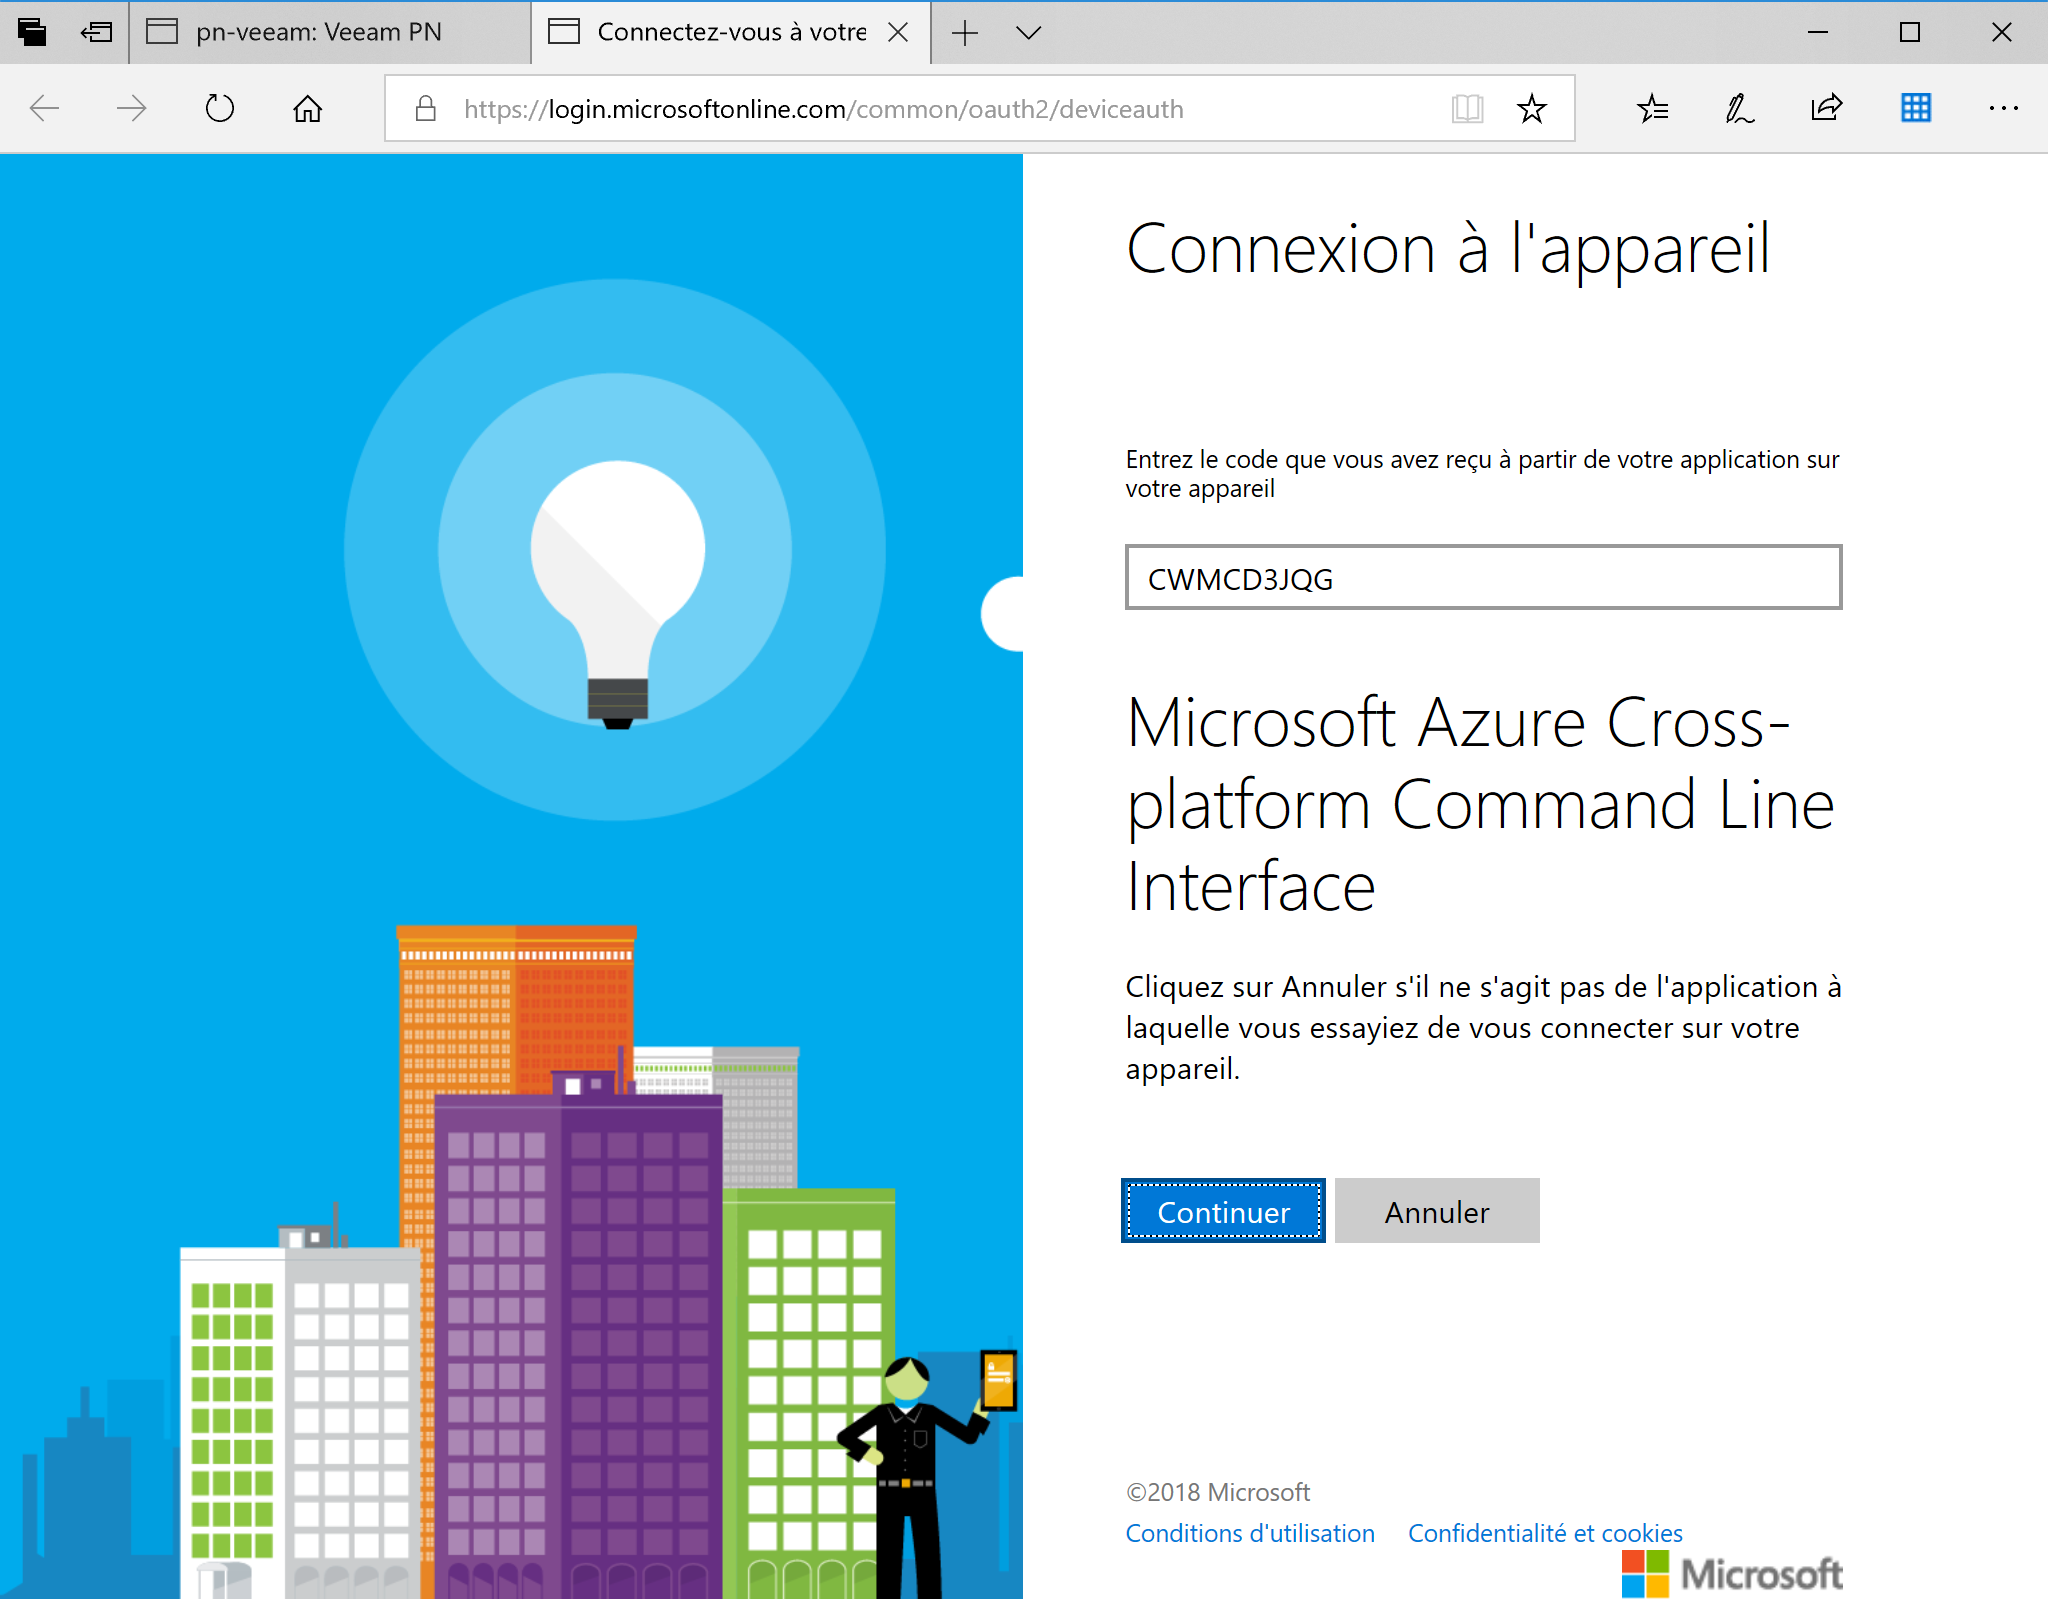 Connect to the Azure Portal Veeam PN